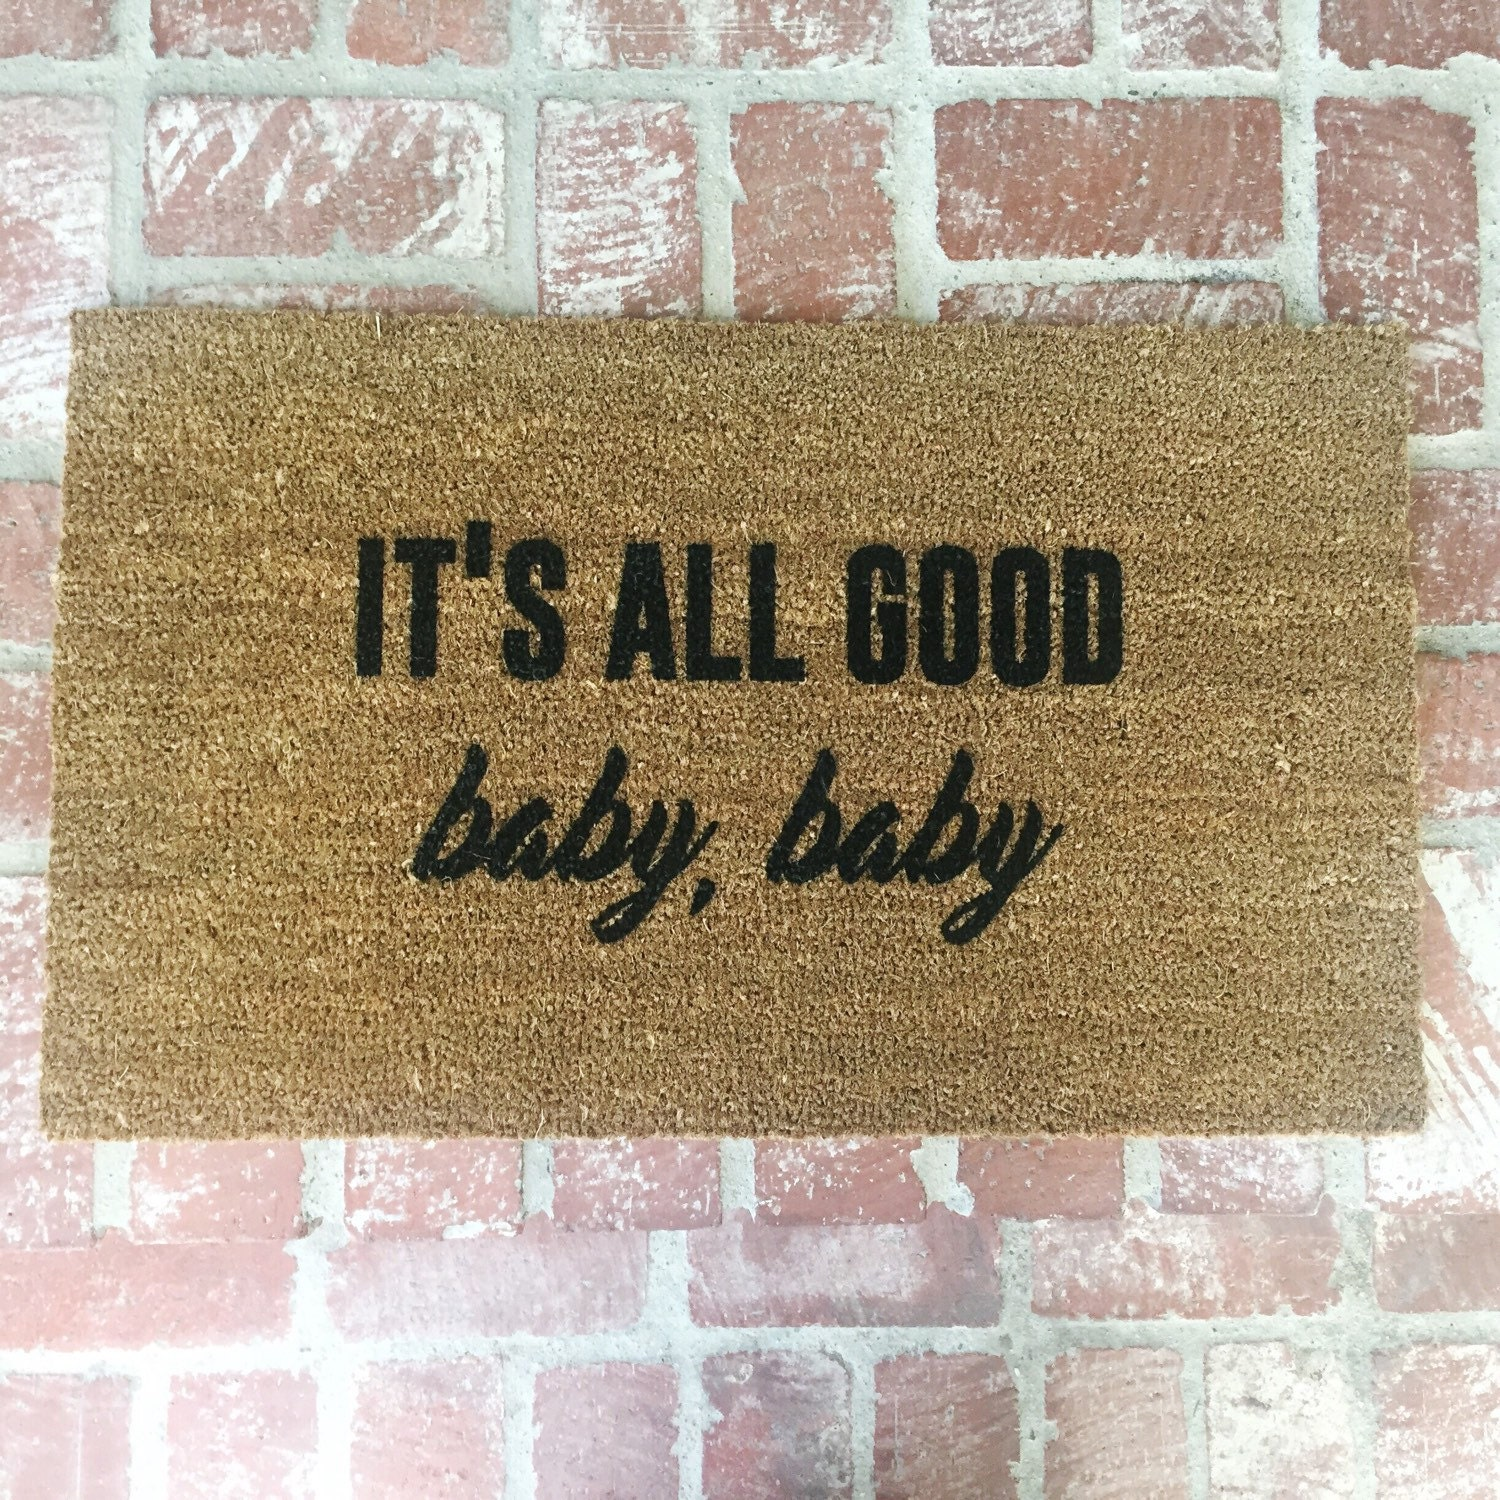 mats rubber throughout australia monogrammed full amazon doormat up hello of whats front cute coir large measurements door welcome personalized size ideas personalised hey x doors sale mat